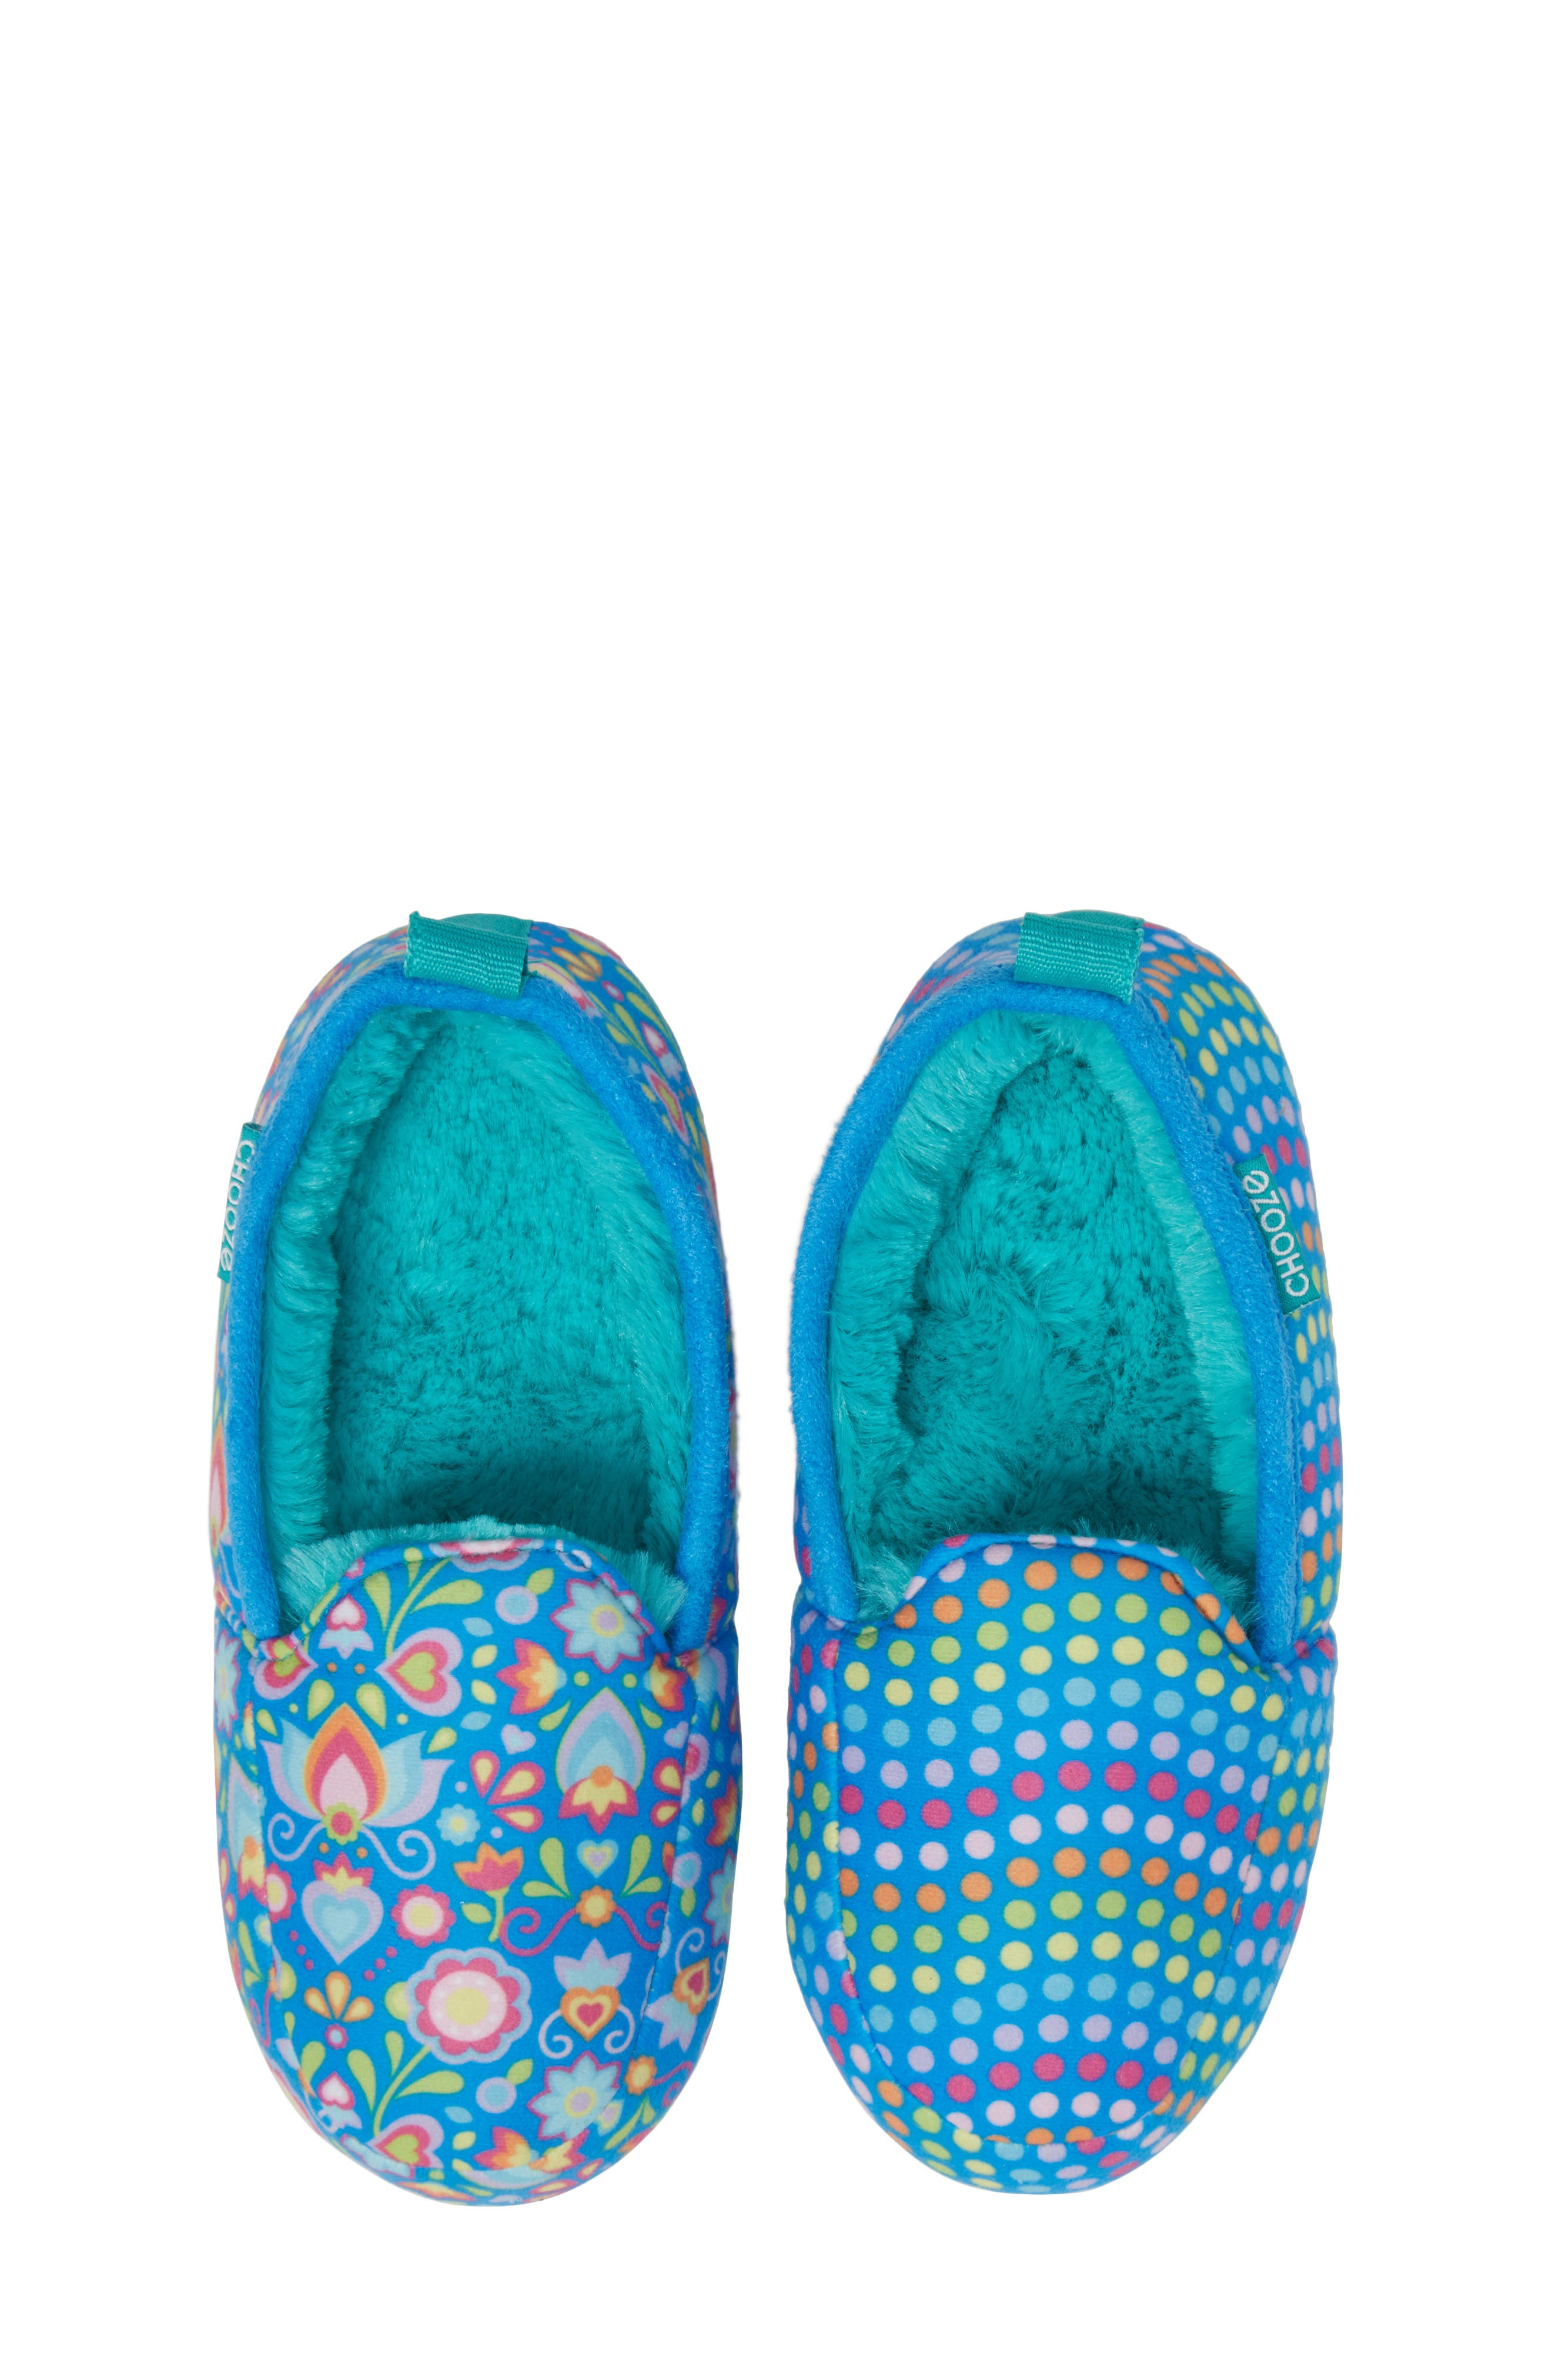 'Slumber' Slippers,                             Main thumbnail 6, color,